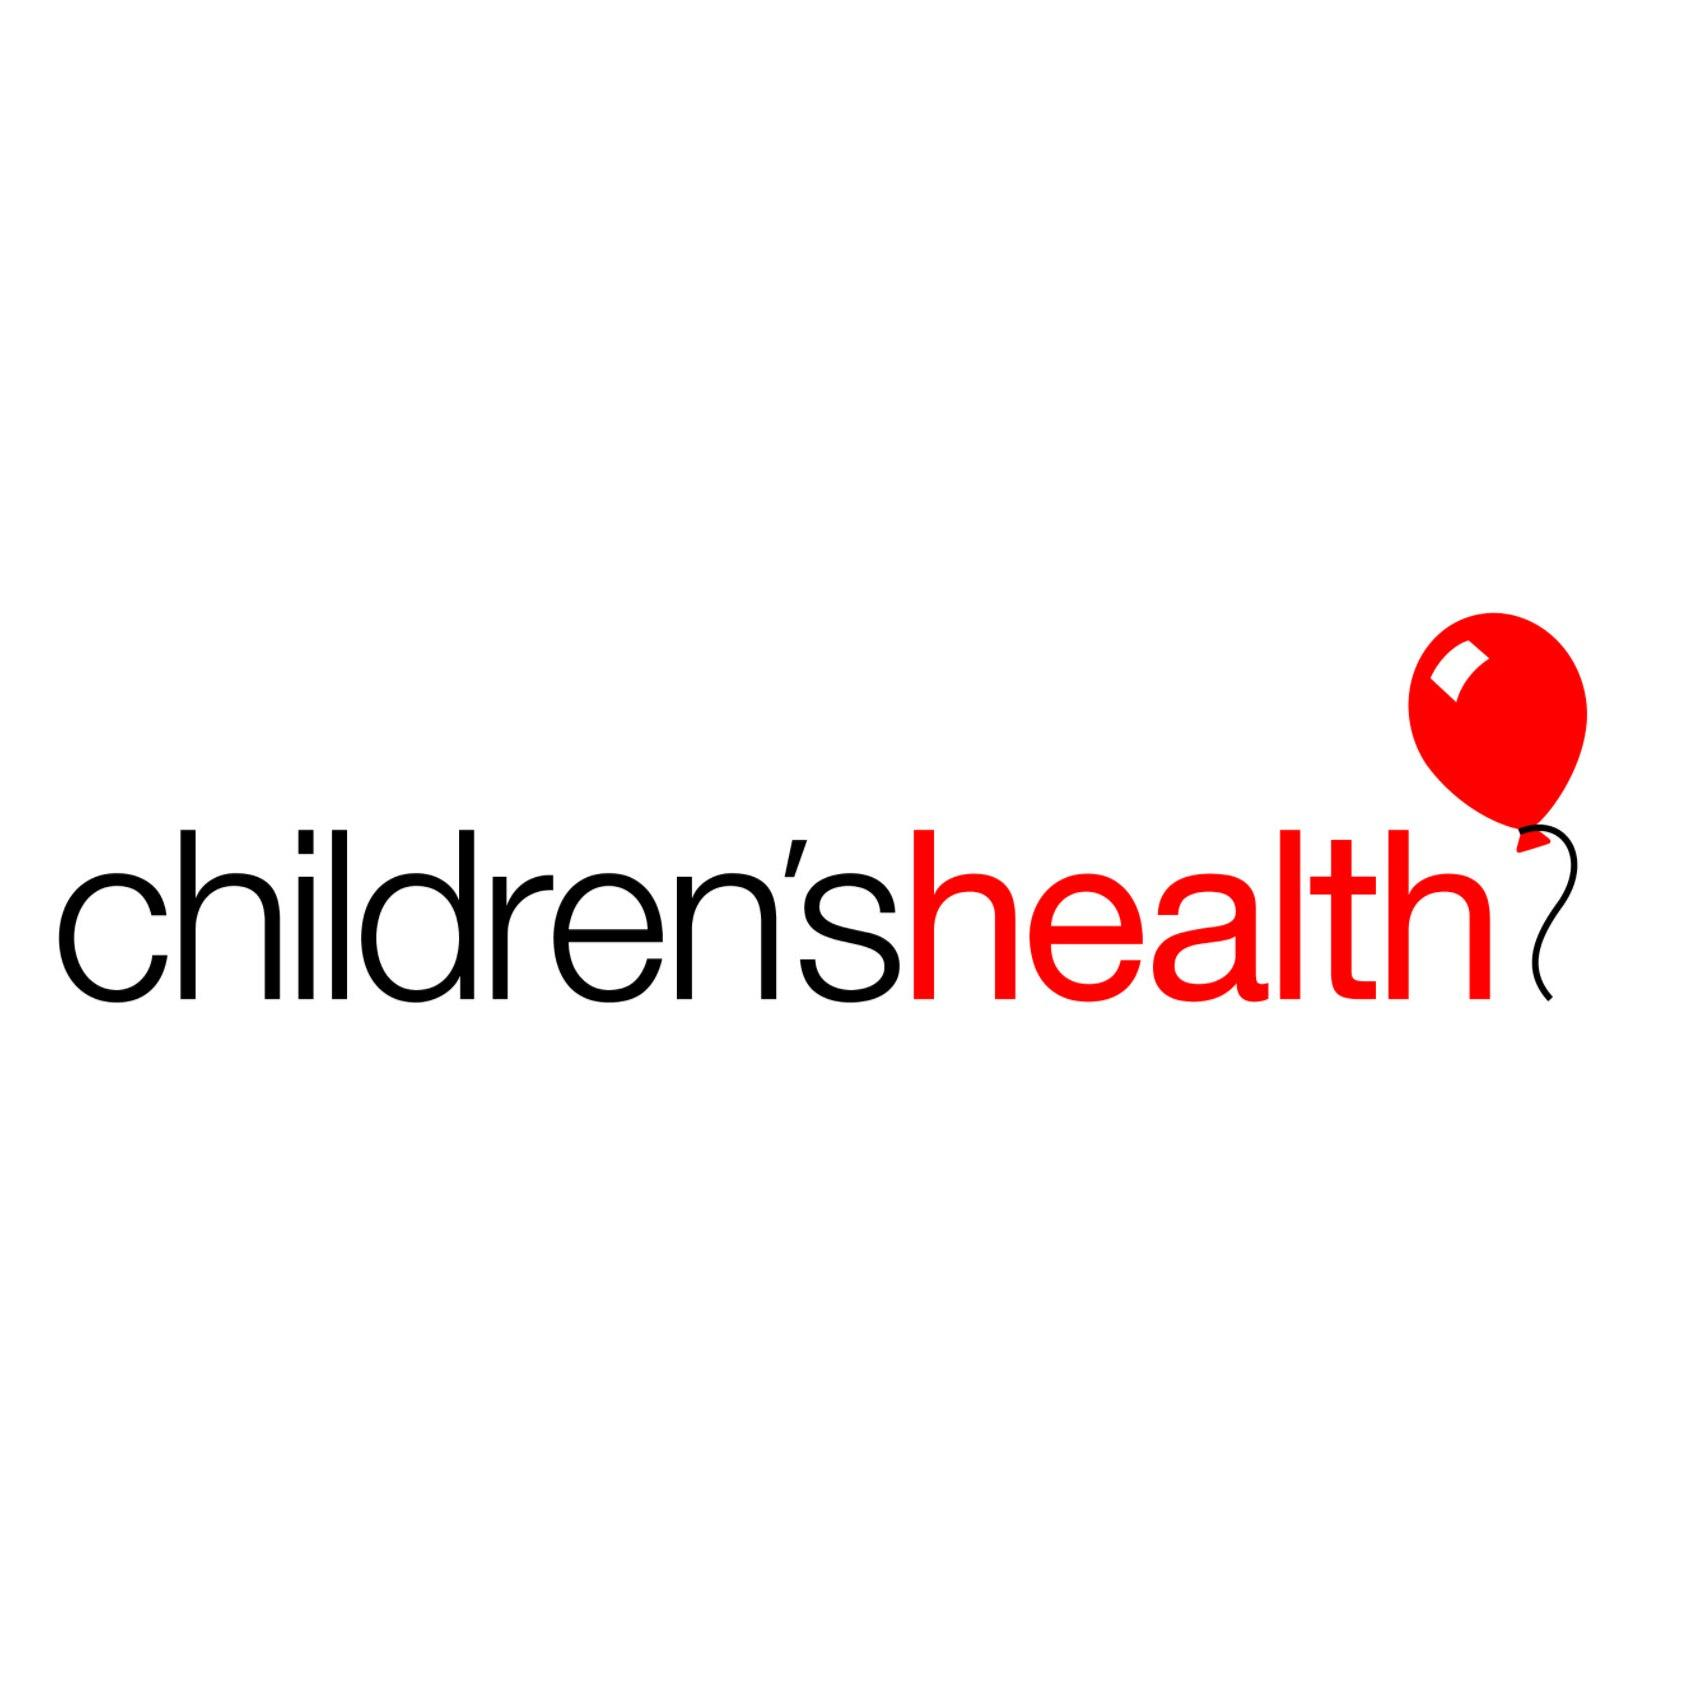 Children's Health Thrive - Dallas - Dallas, TX 75235 - (214)456-6500 | ShowMeLocal.com